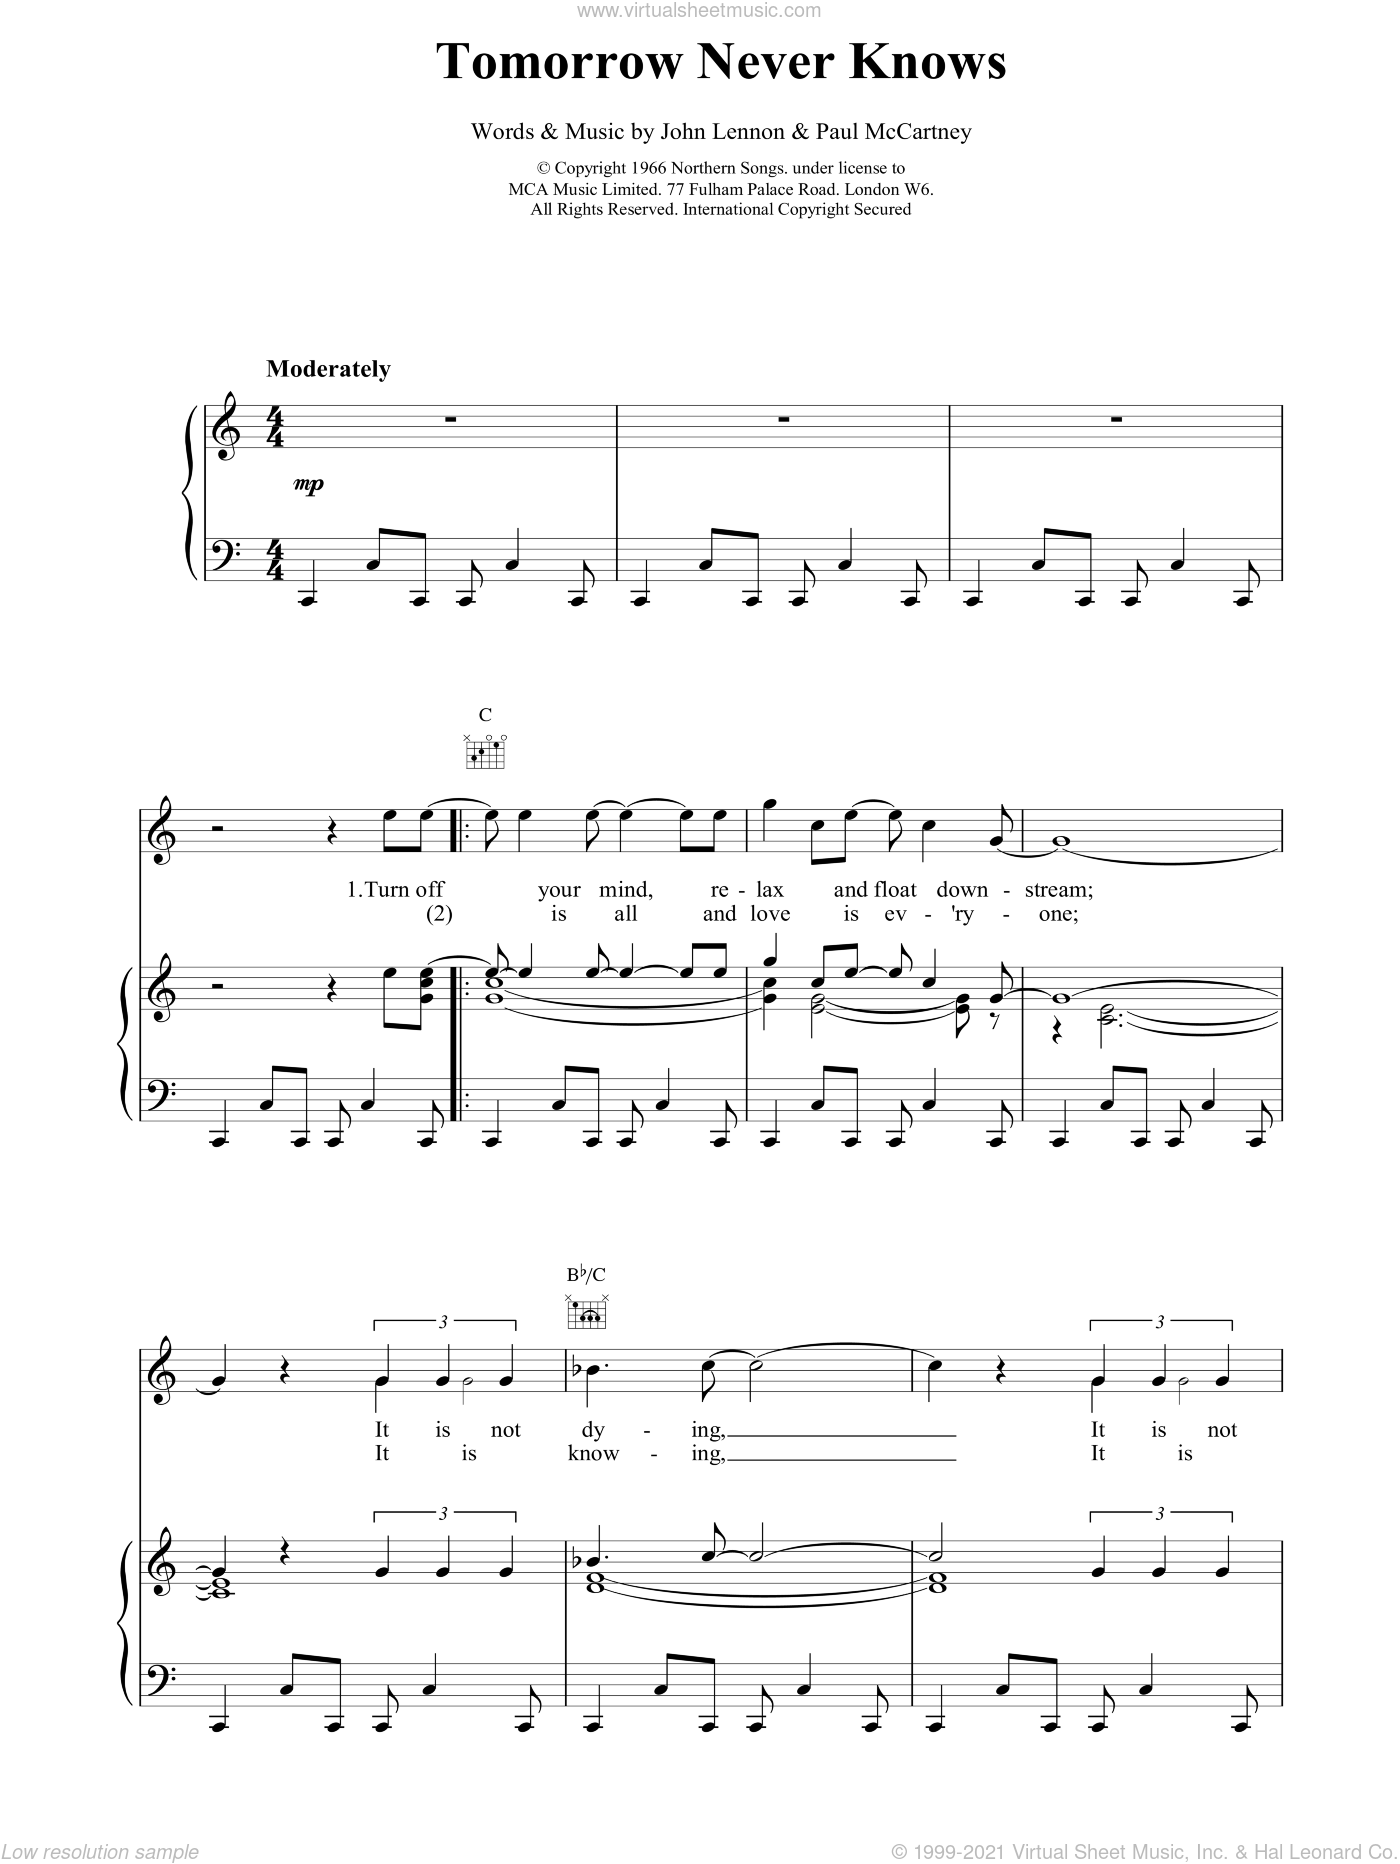 Tomorrow Never Knows sheet music for voice, piano or guitar by The Beatles. Score Image Preview.